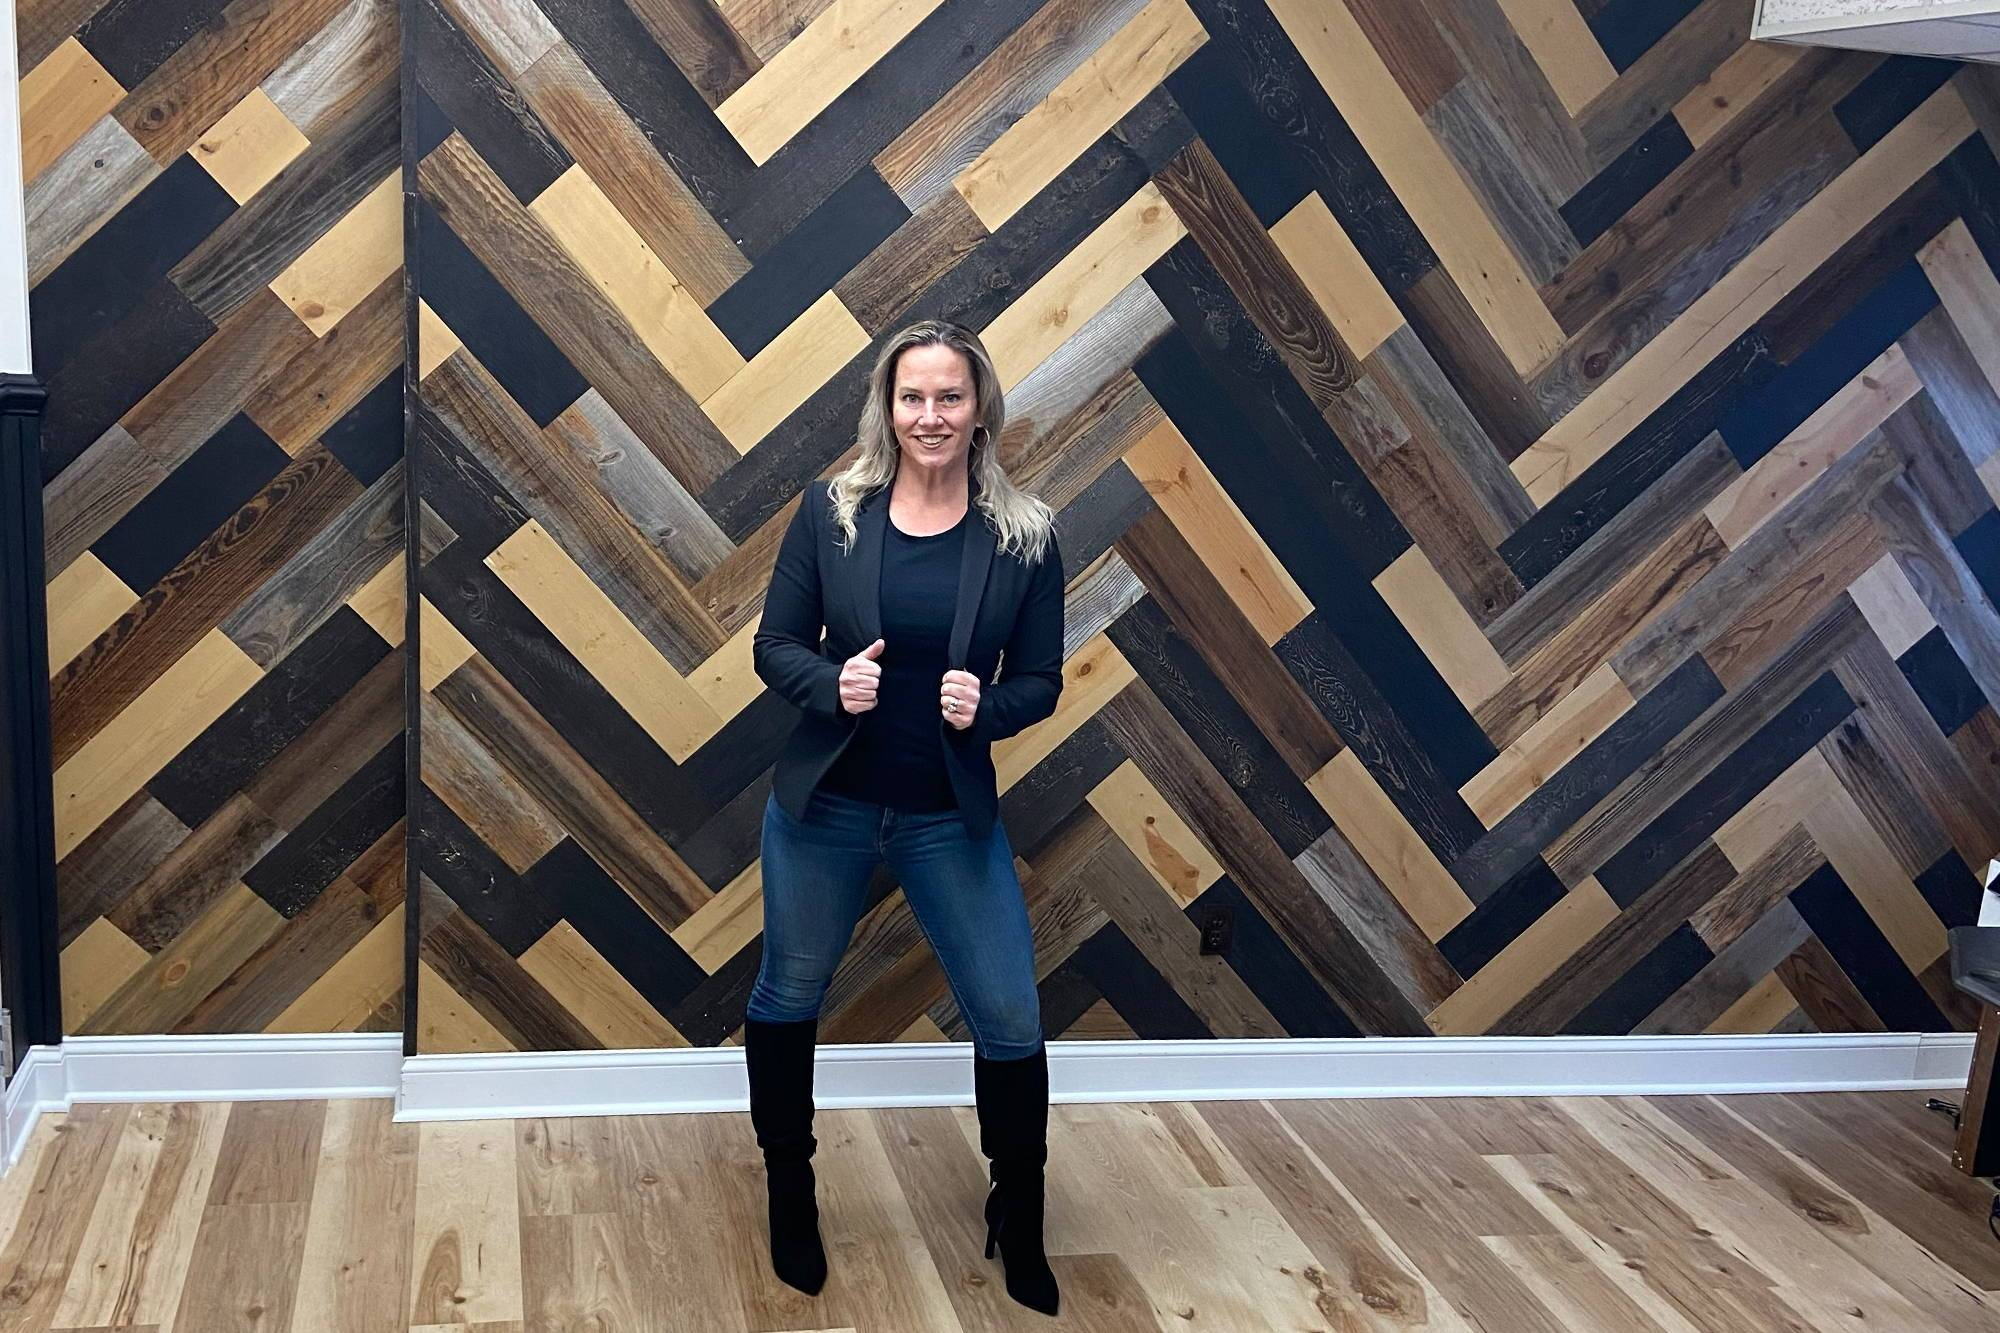 large feature wall designed by Jay C that mixes several reclaimed wood wall plank finishes from the Stikwood peel and stik wood wall collection.